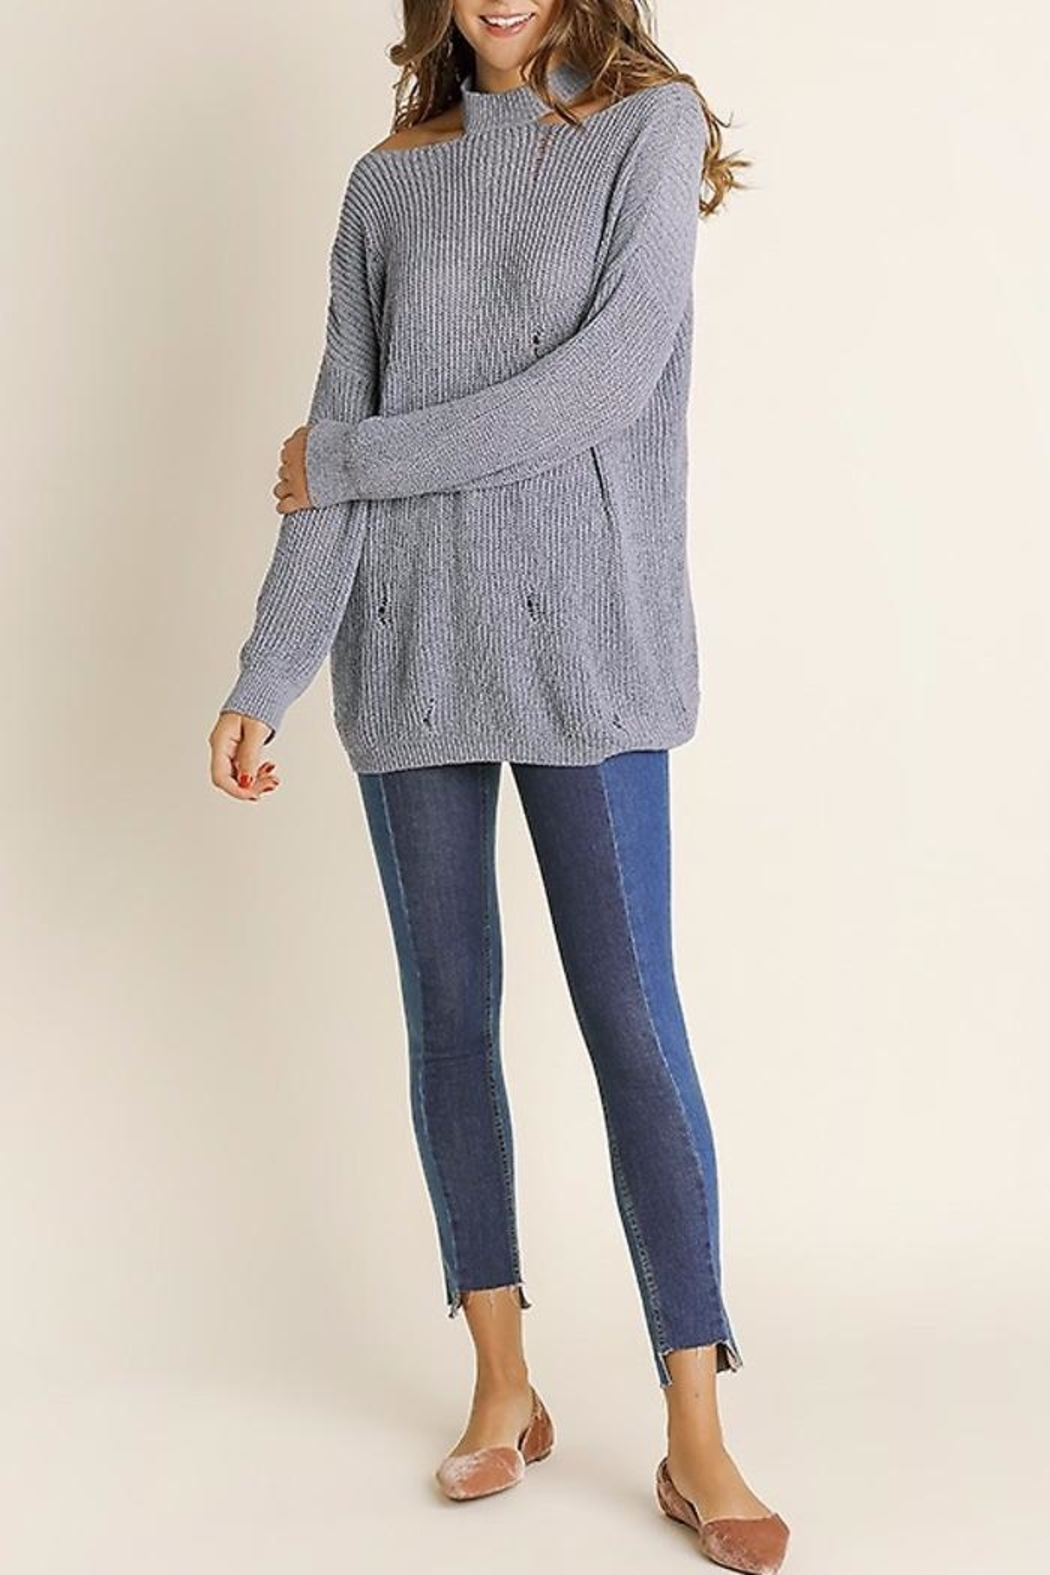 People Outfitter Vintage Knit Sweater - Main Image